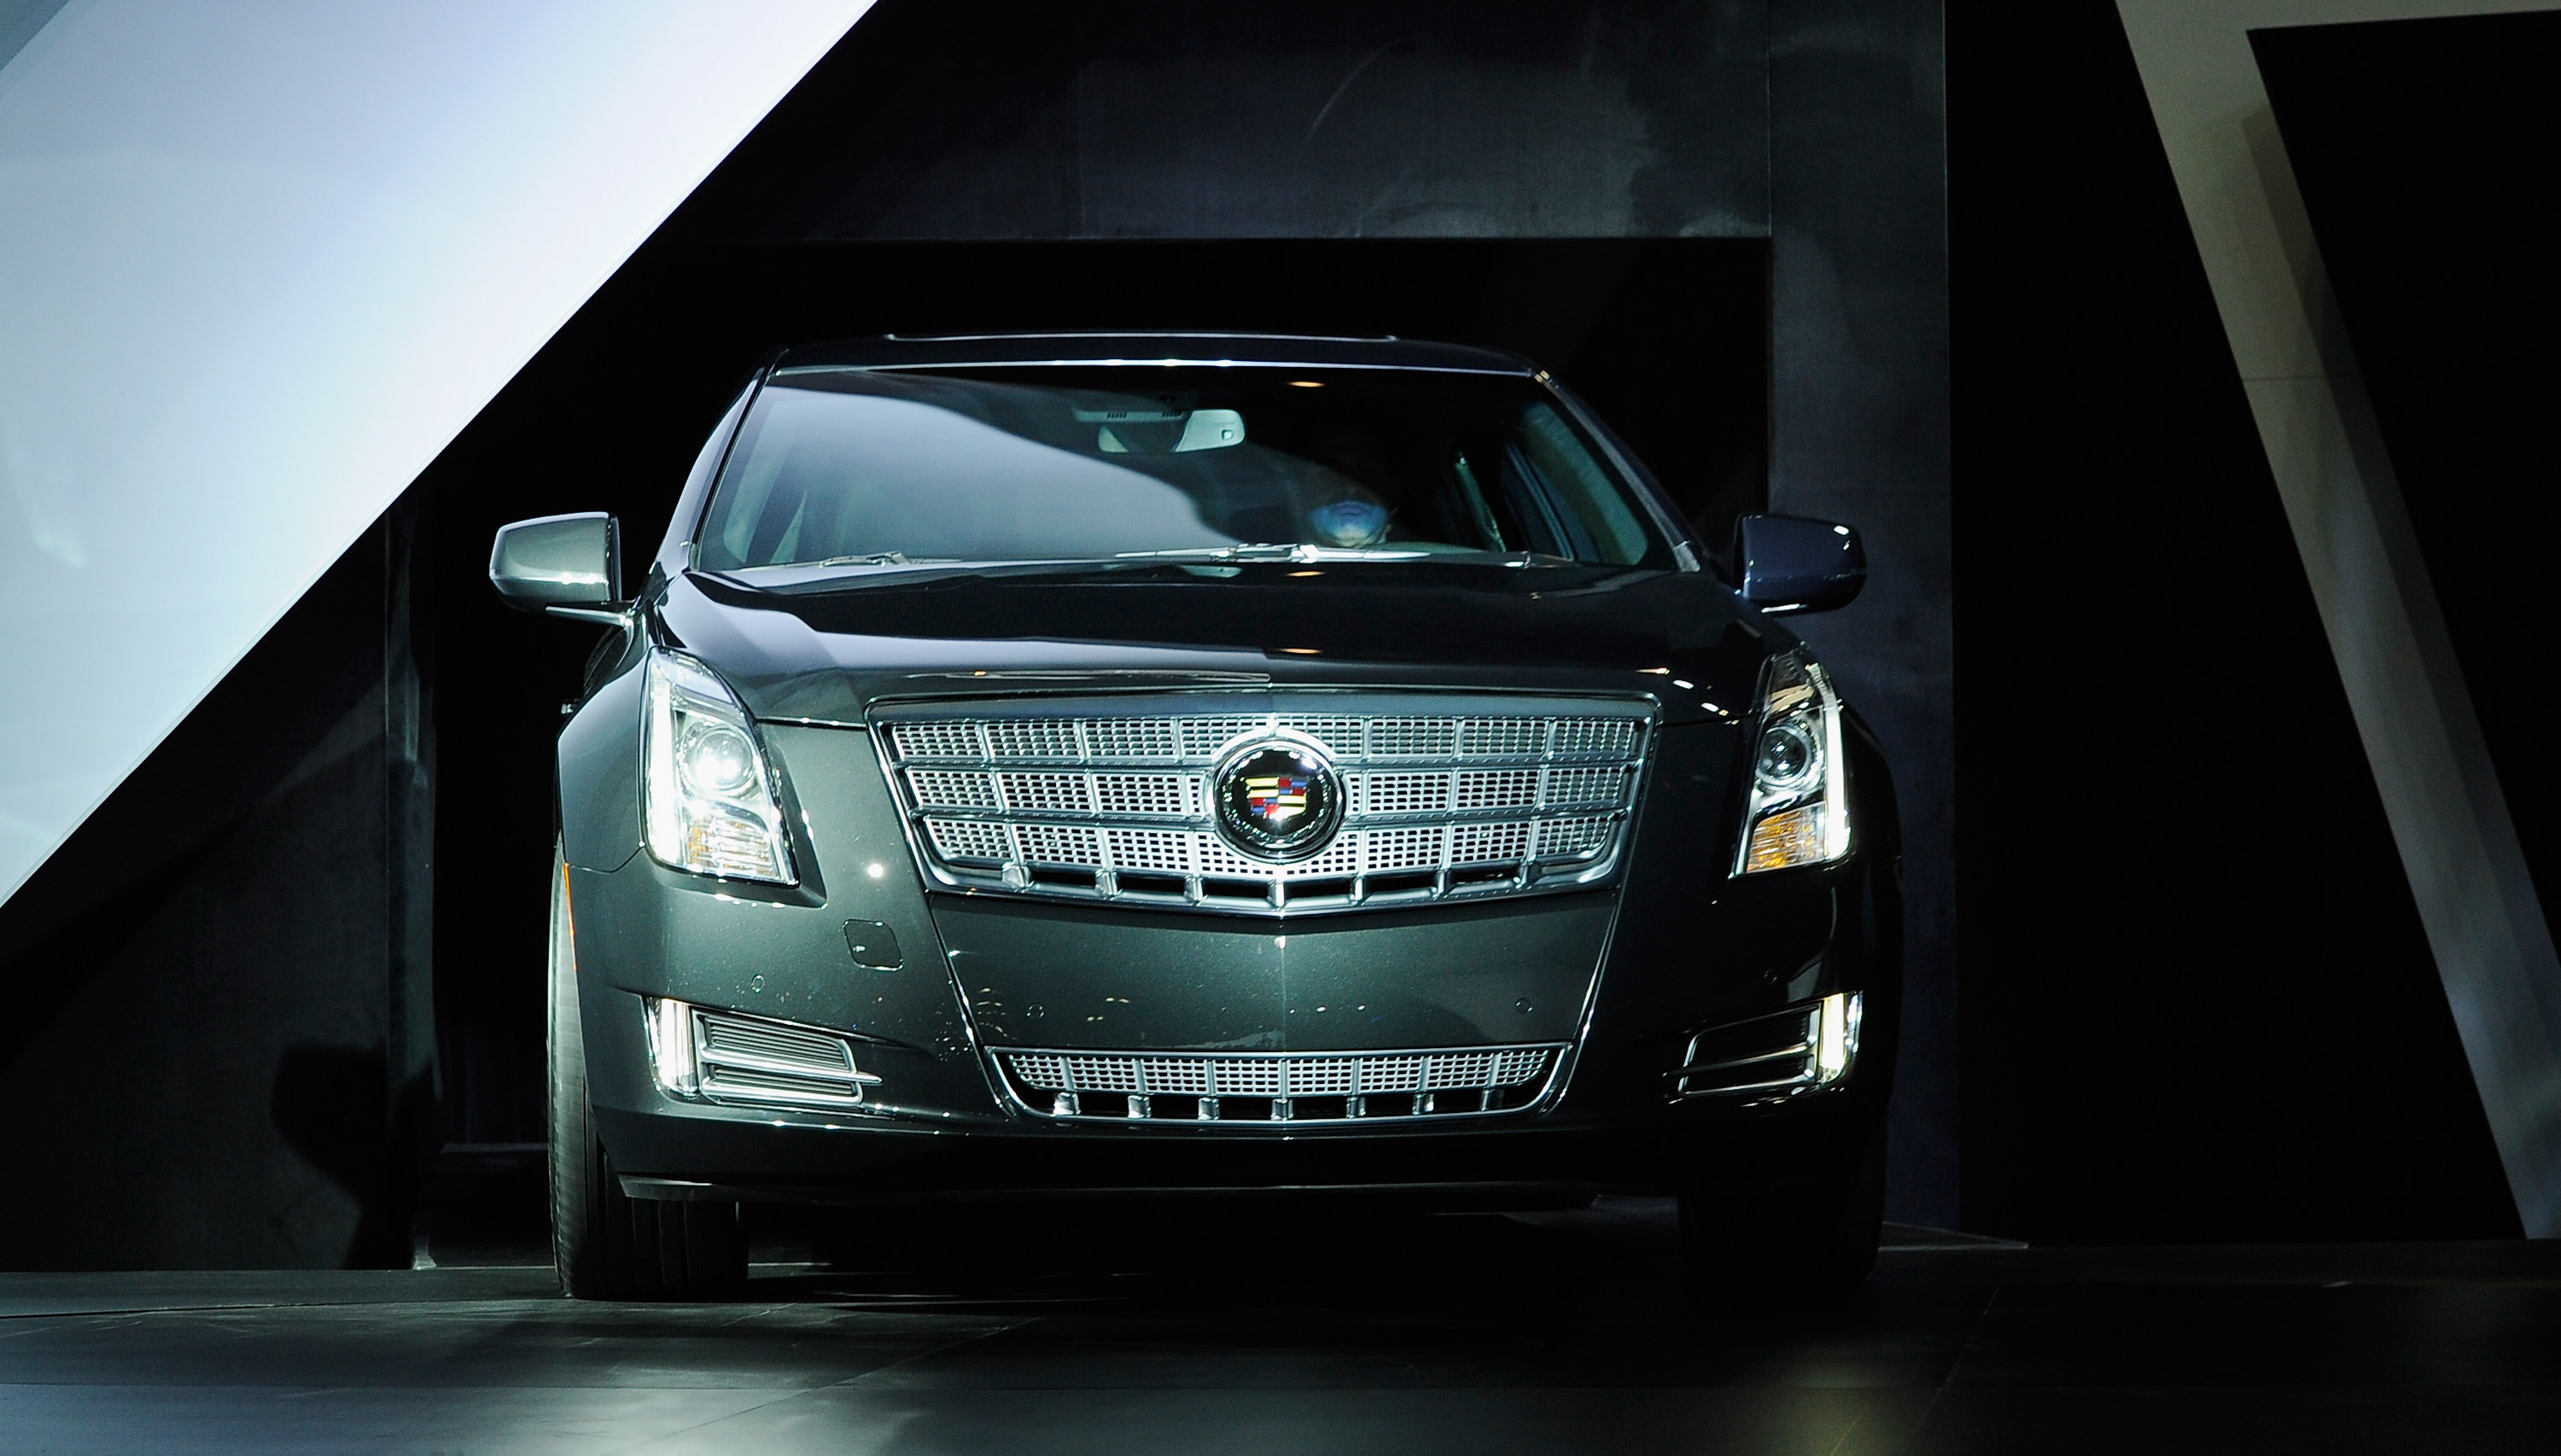 The Cadillac 2013 XTS is unveiled during the LA Auto Show on November 16, 2011 in Los Angeles.